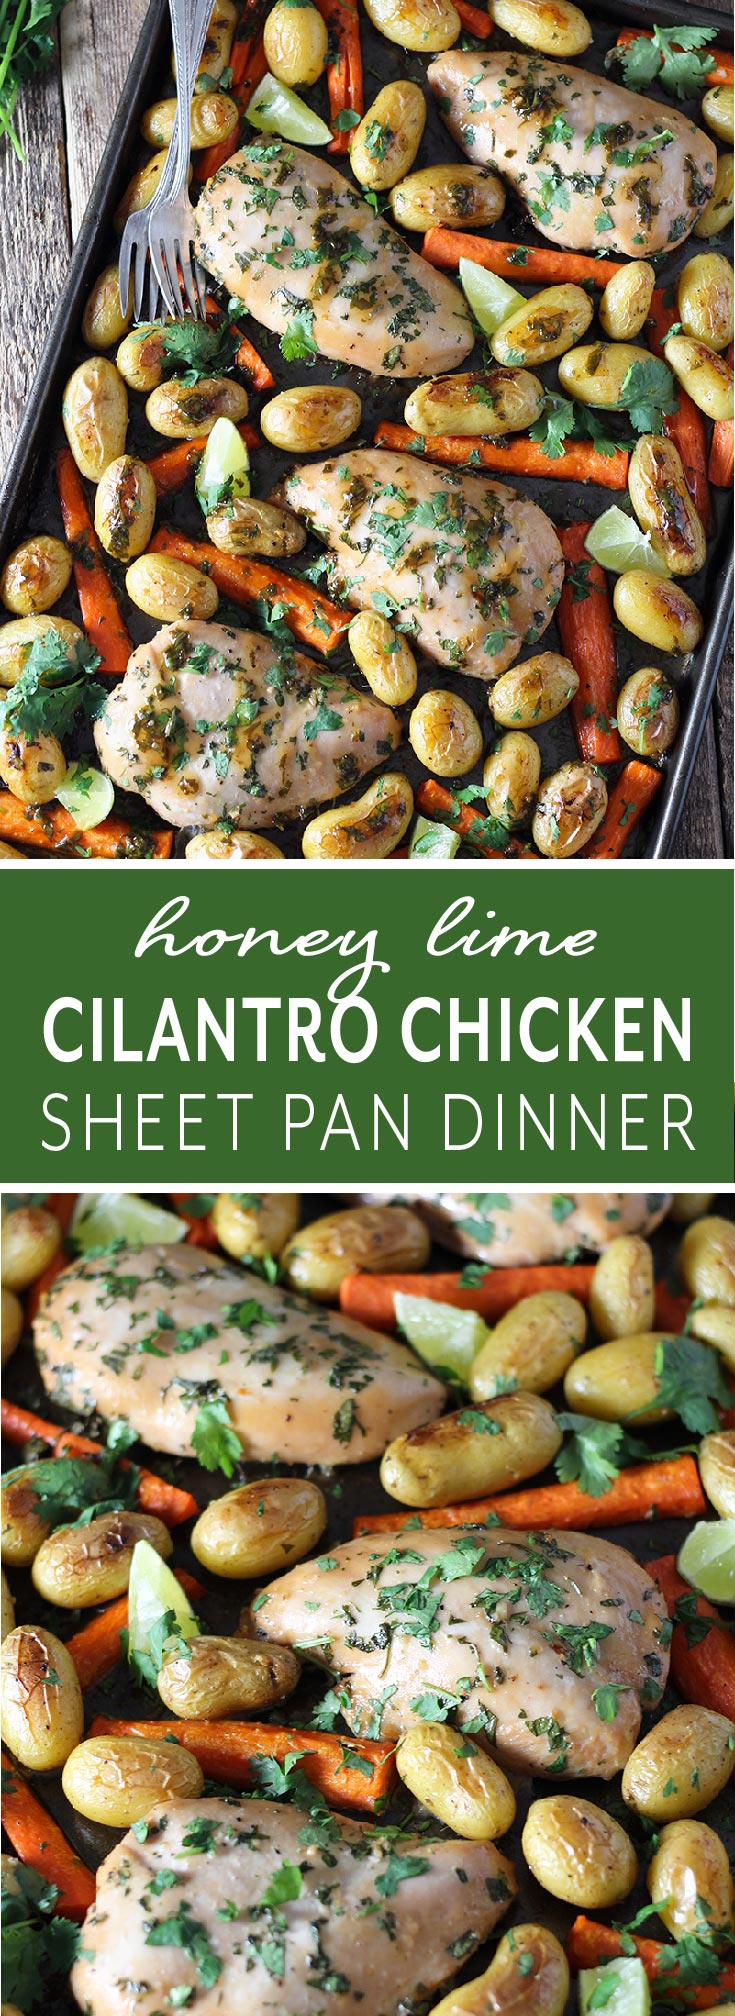 Dinner can't get any easier or tastier. This one pan dinner pairs the most delicious honey lime cilantro chicken with perfectly roasted potatoes and carrots and is served with extra dipping sauce on the side!